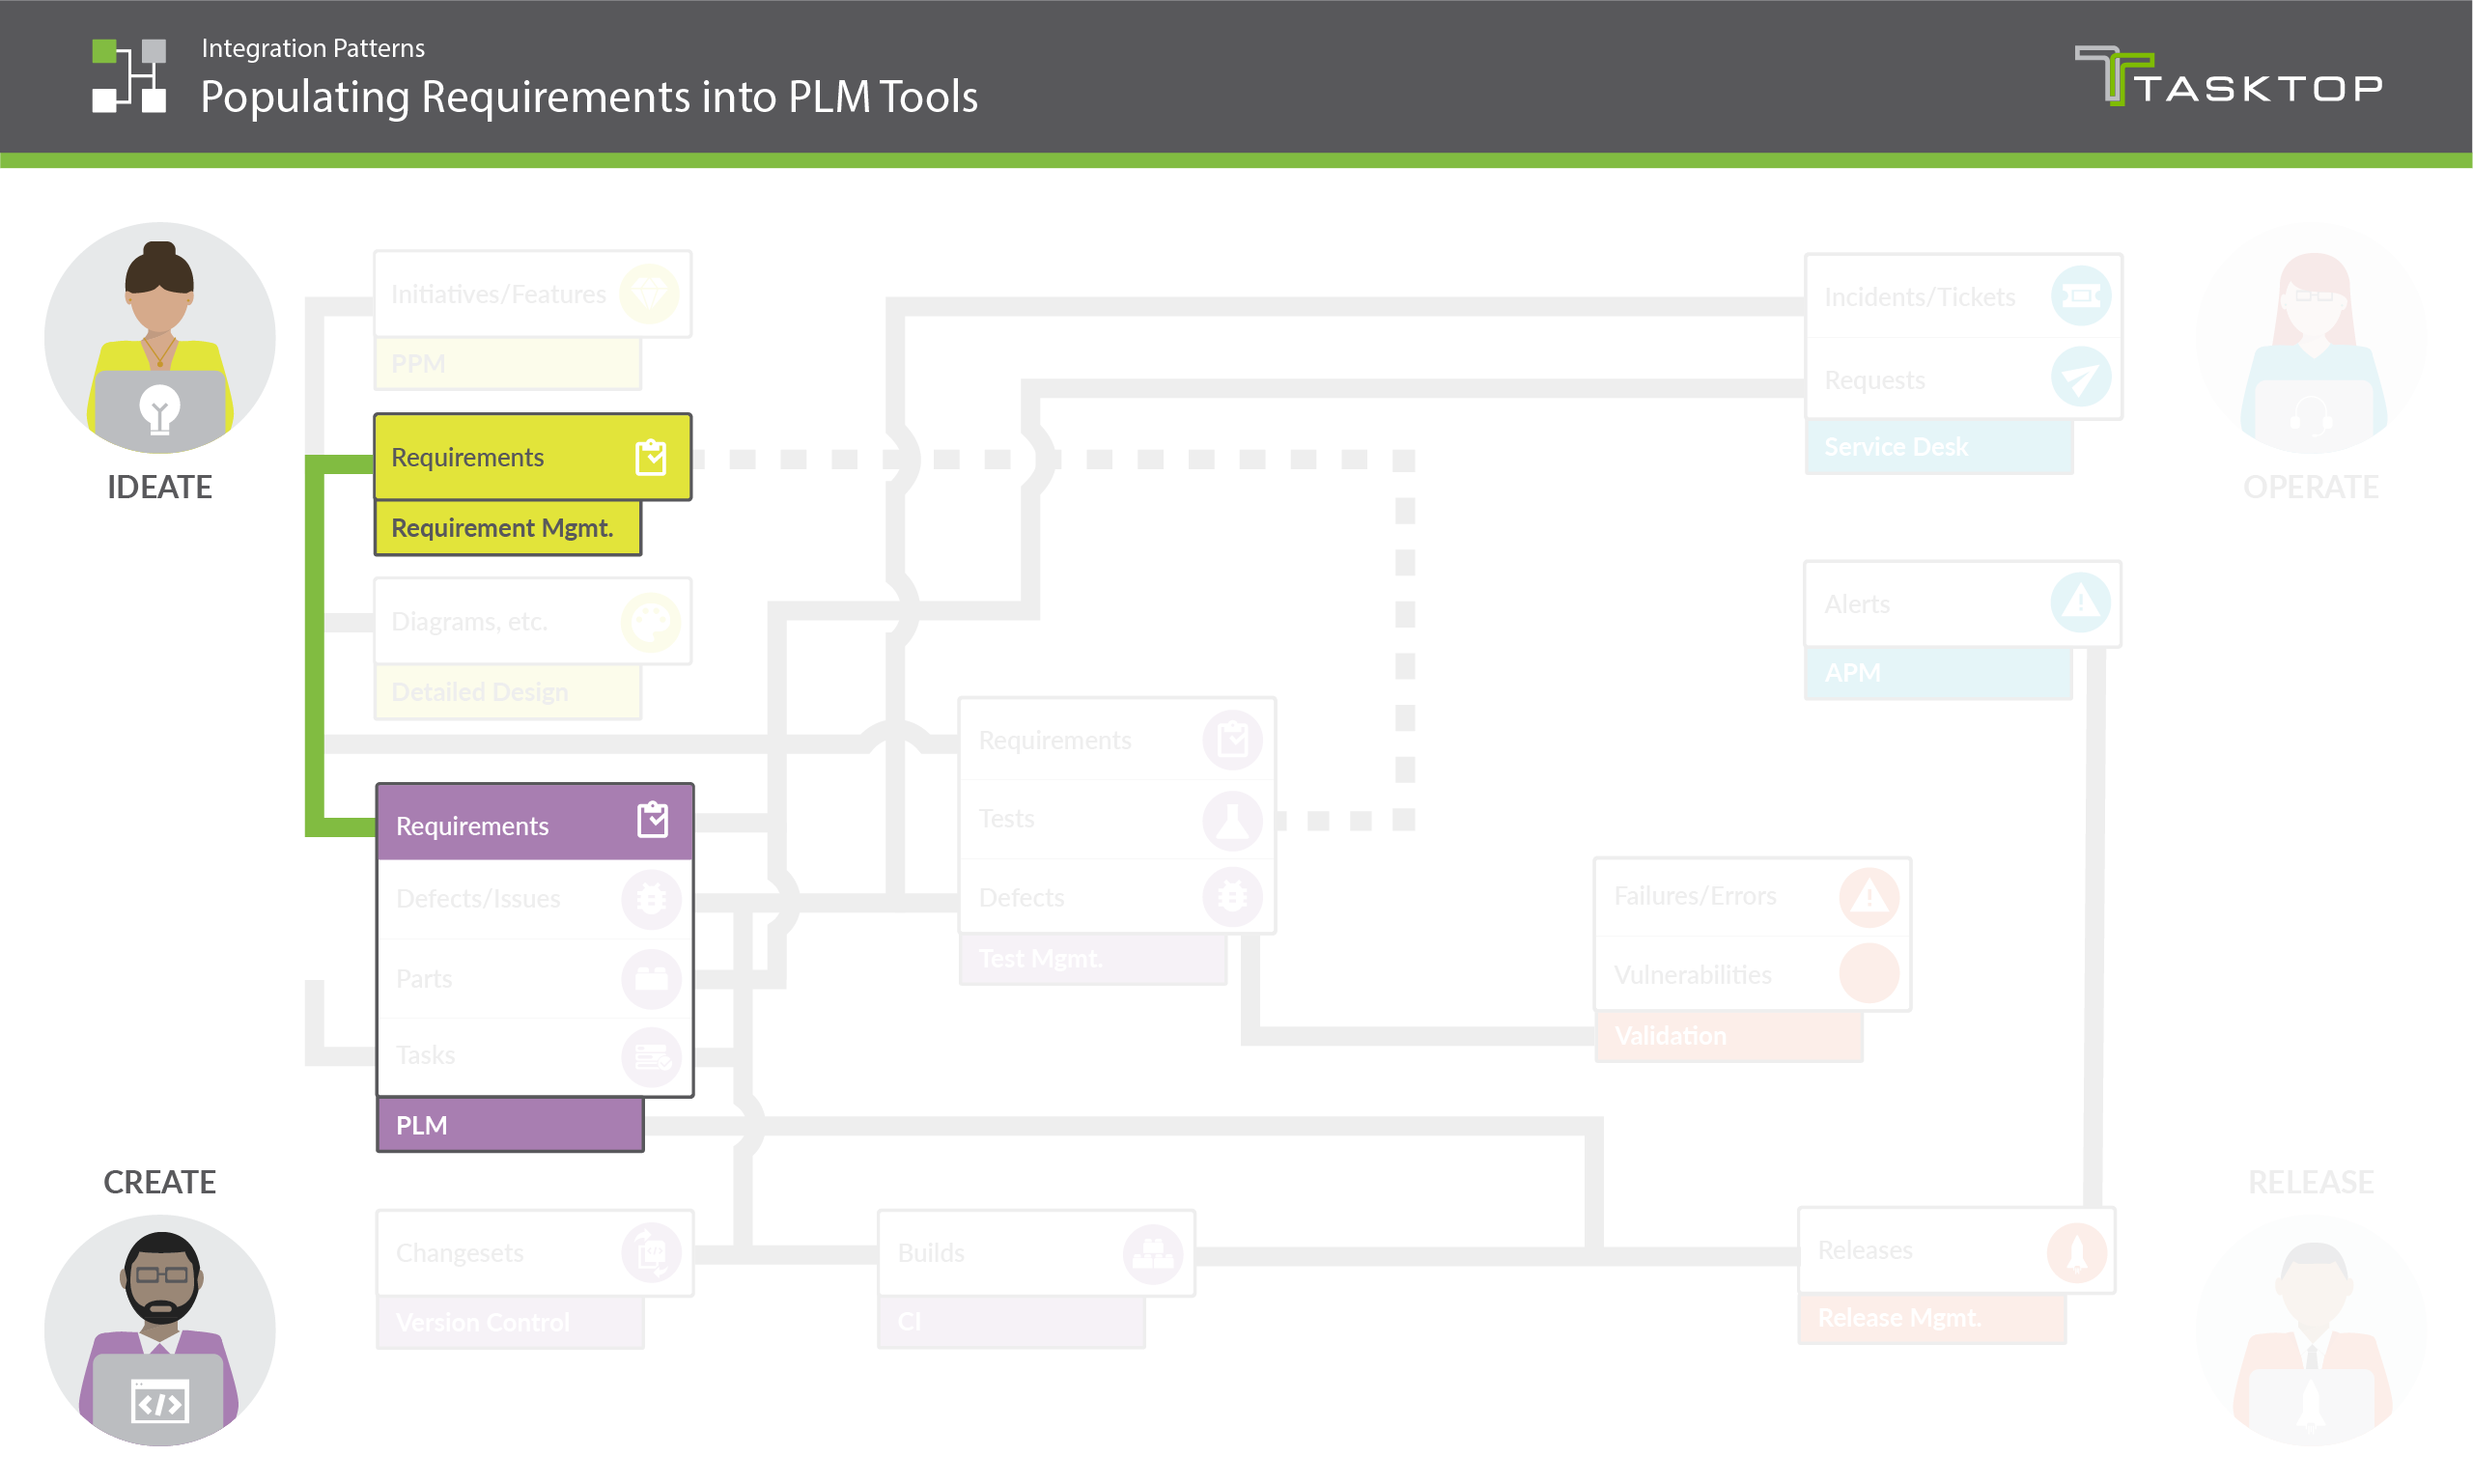 Integration Pattern Populating Requirements into PLM Tools